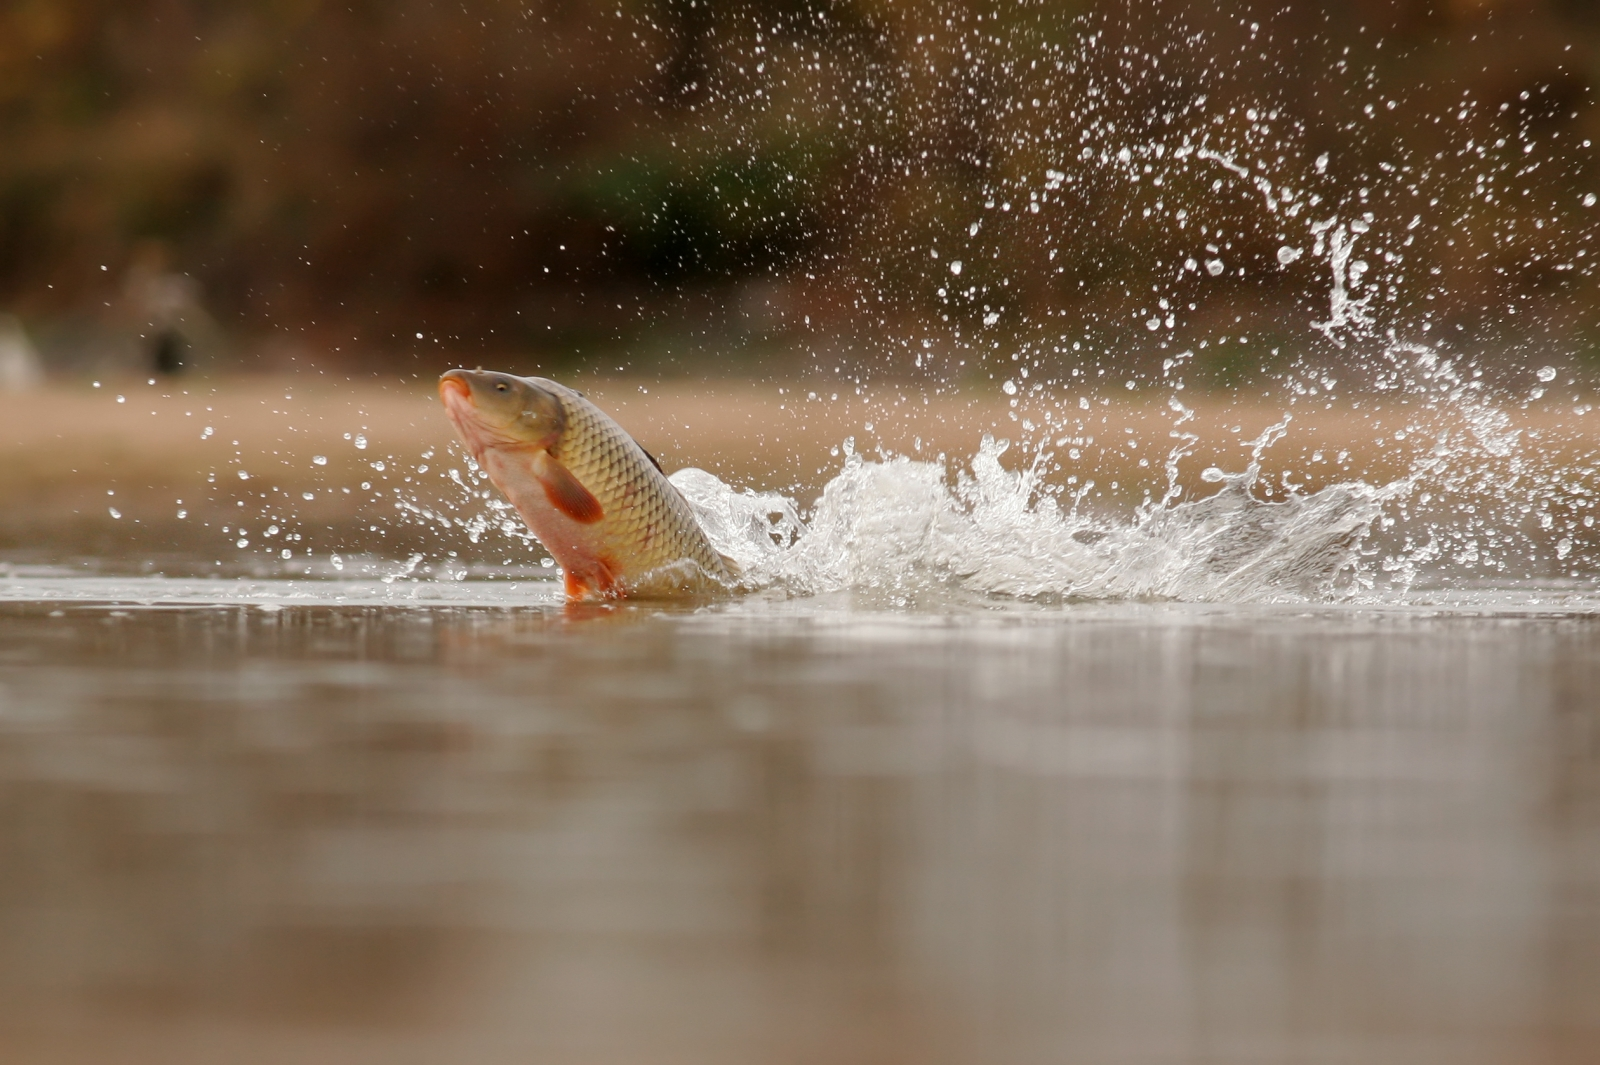 Common carp leaping out of the water